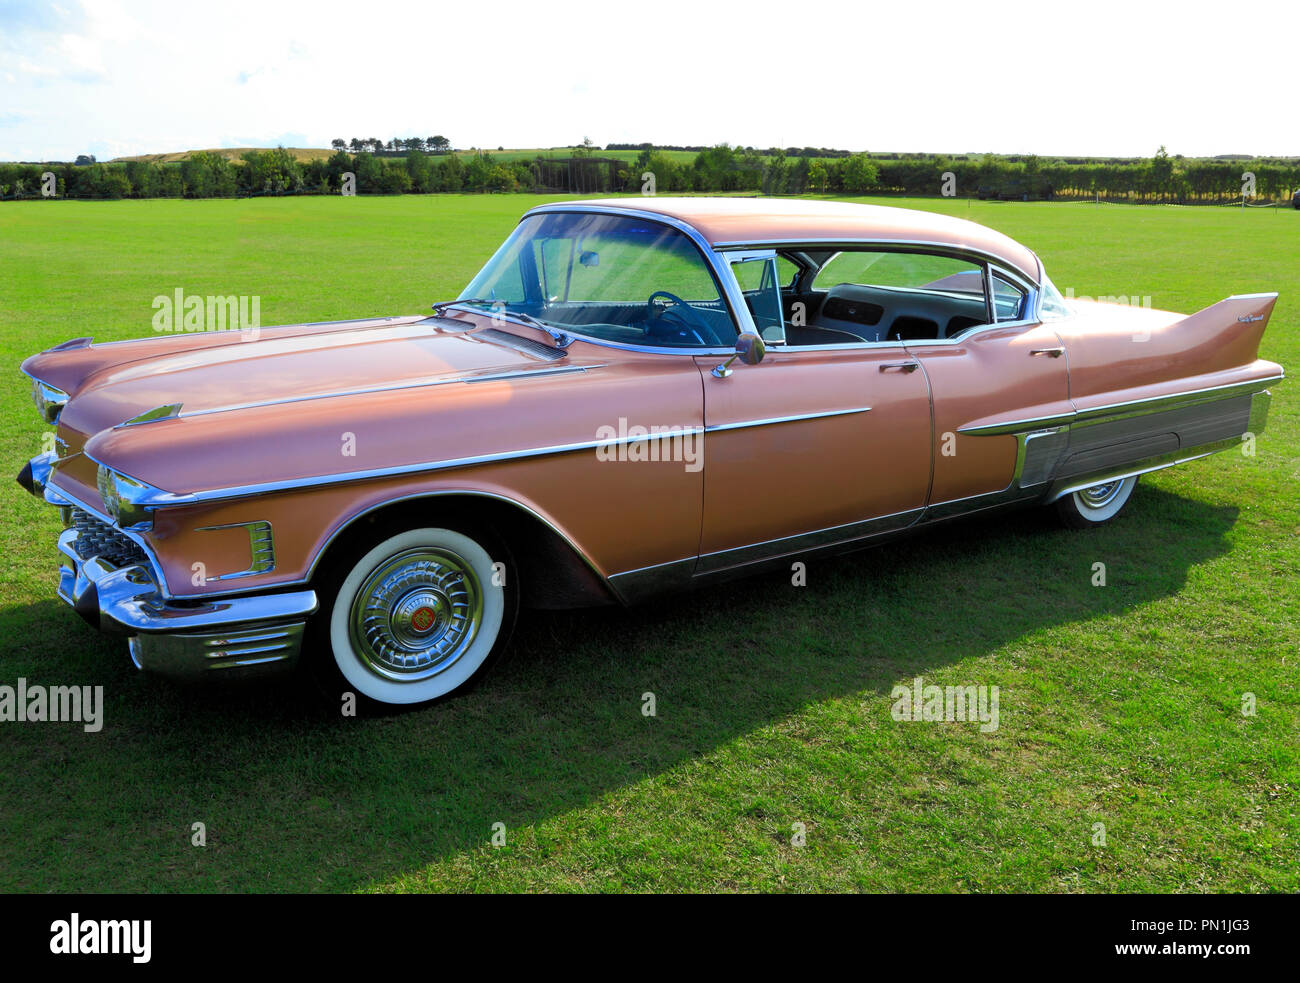 Pink Cadillac, Fleetwood, classic American car, automobile Immagini Stock